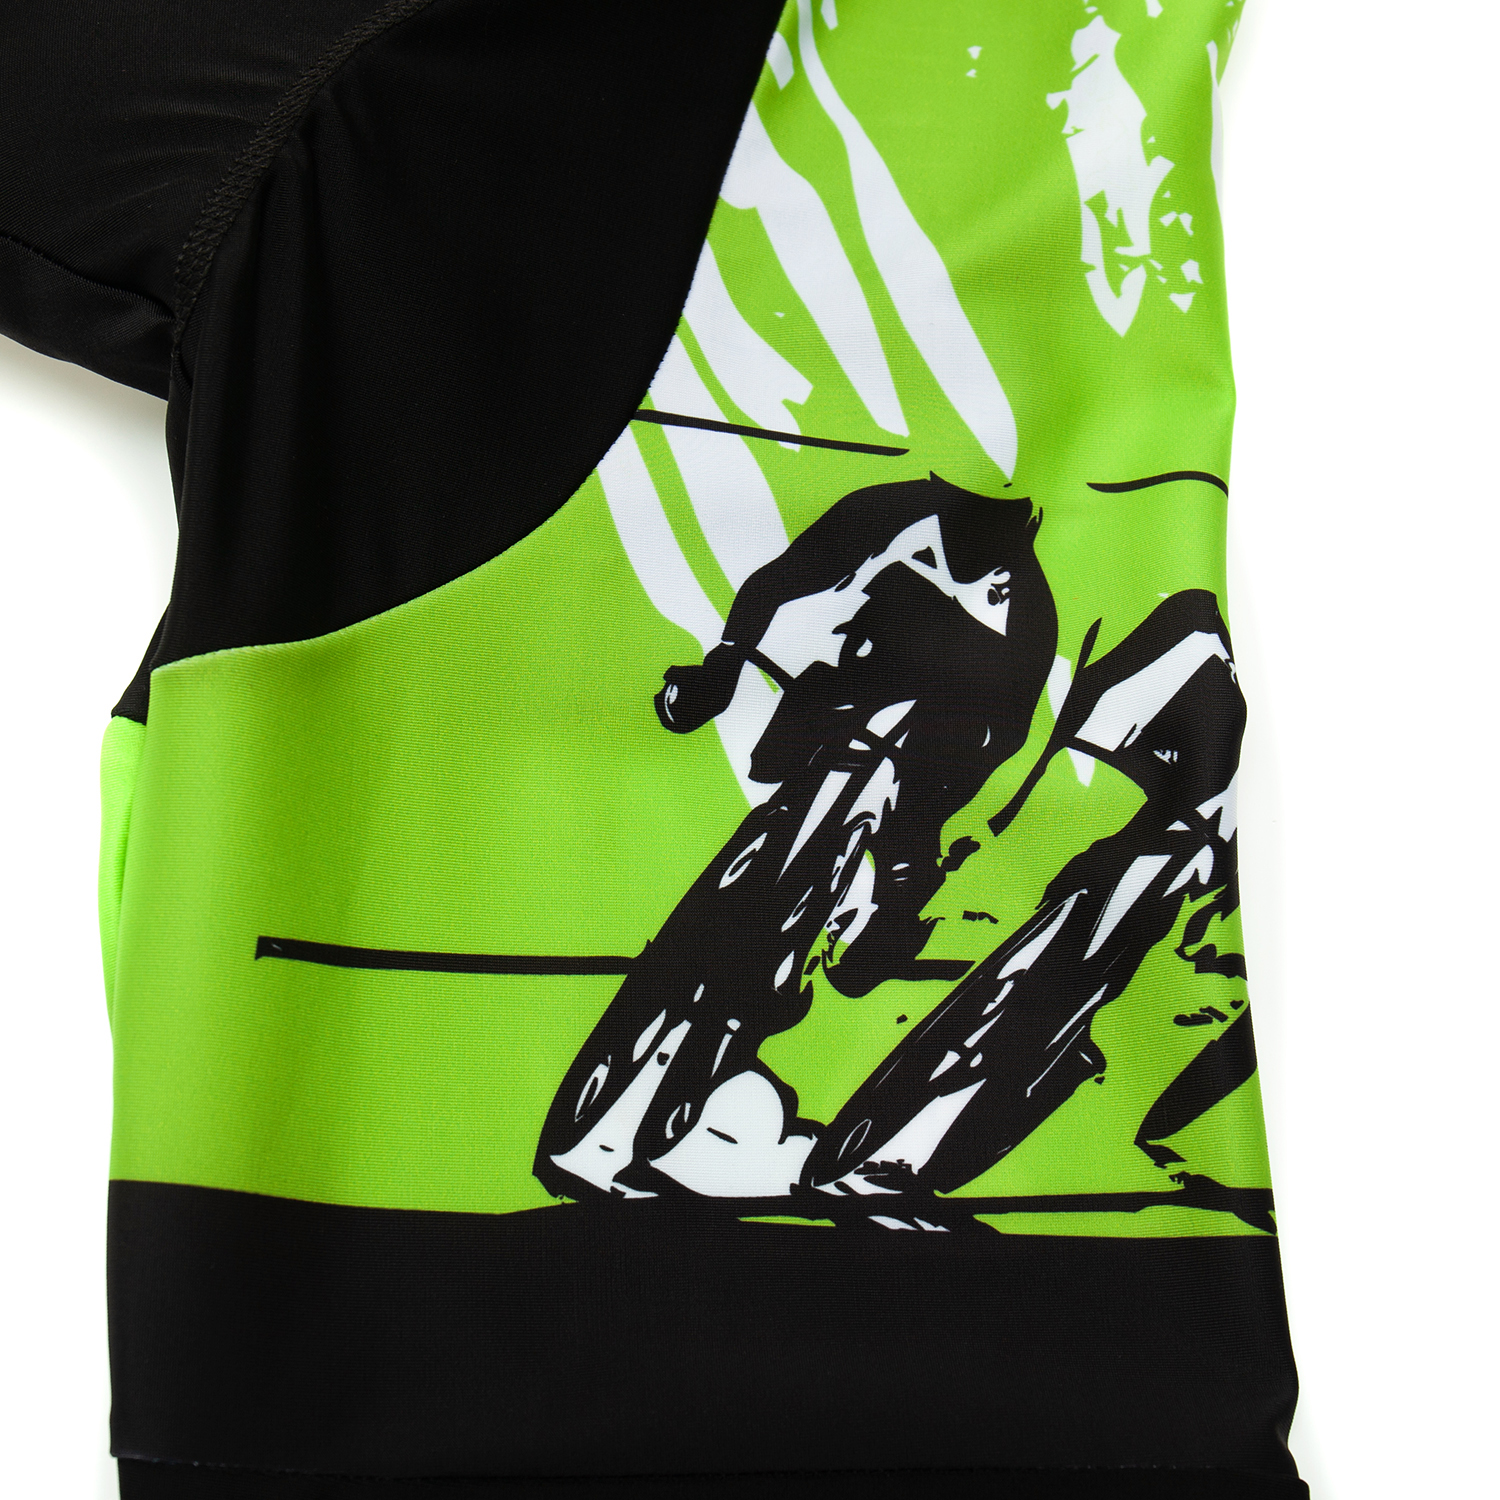 Green Men/'s Cycling Jersey Long Bib Pants Kits Long Sleeve Shirt Tights Set